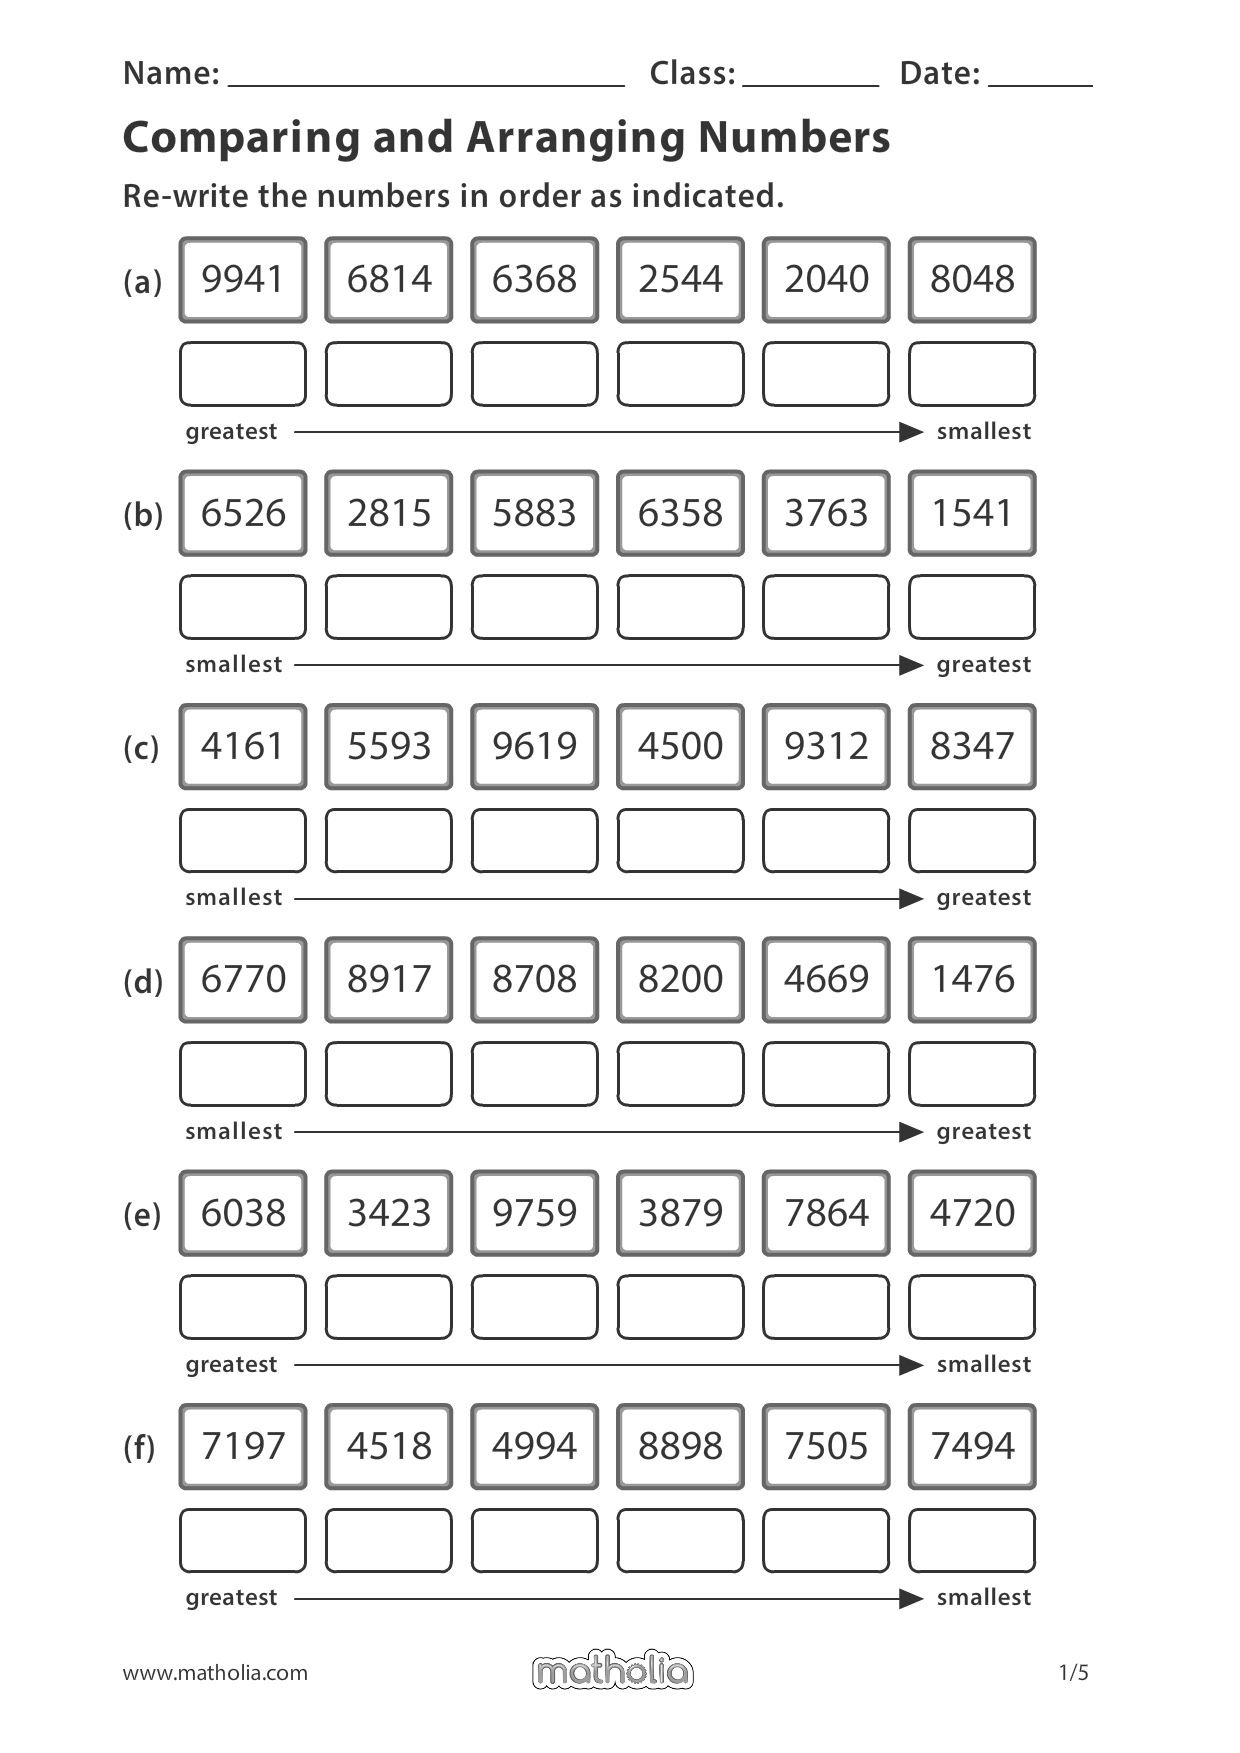 hight resolution of Comparing and Arranging Numbers   3rd grade math worksheets